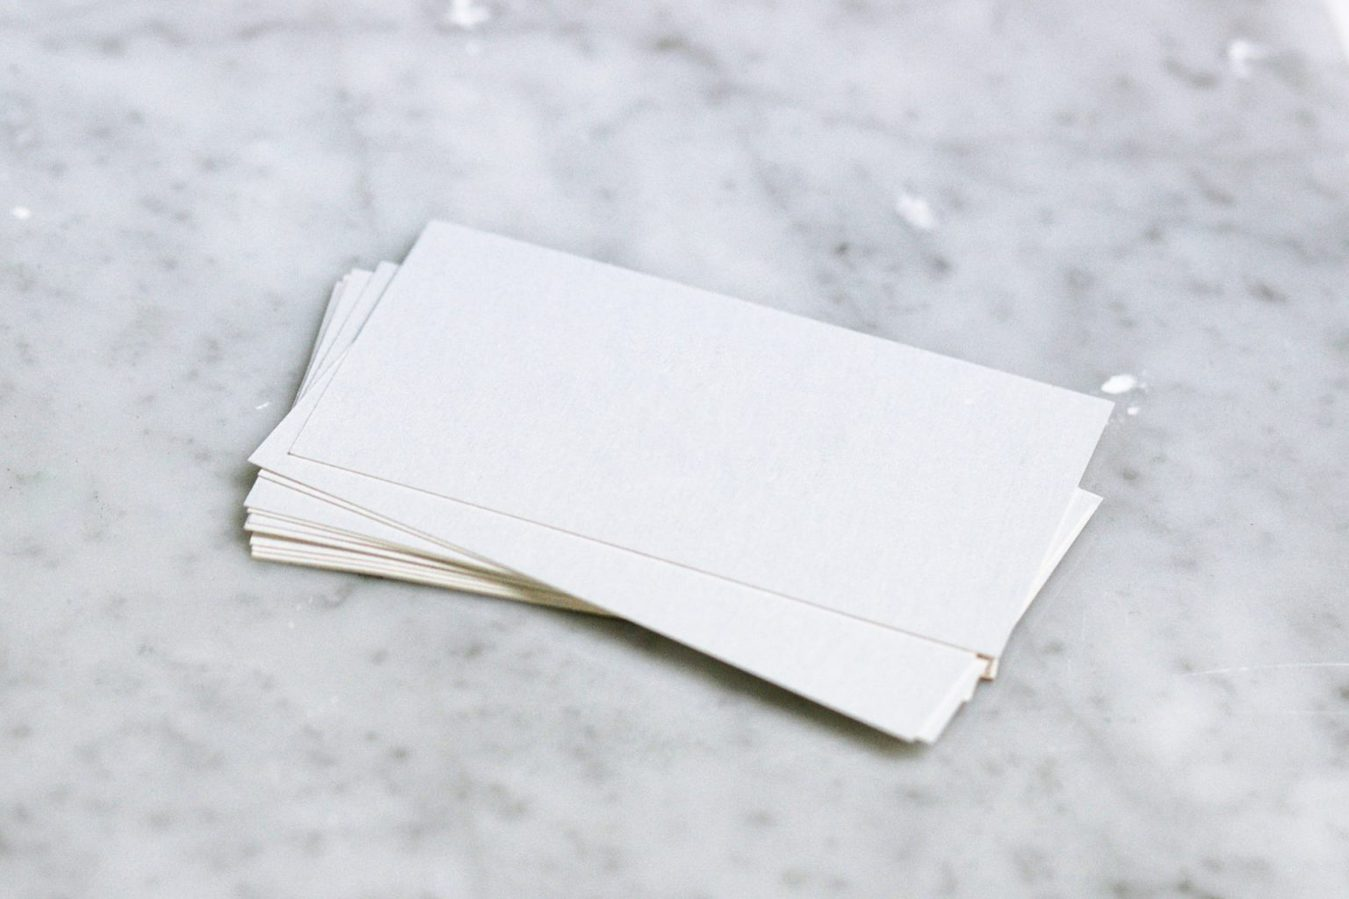 A pile of blank business cards on a marble table